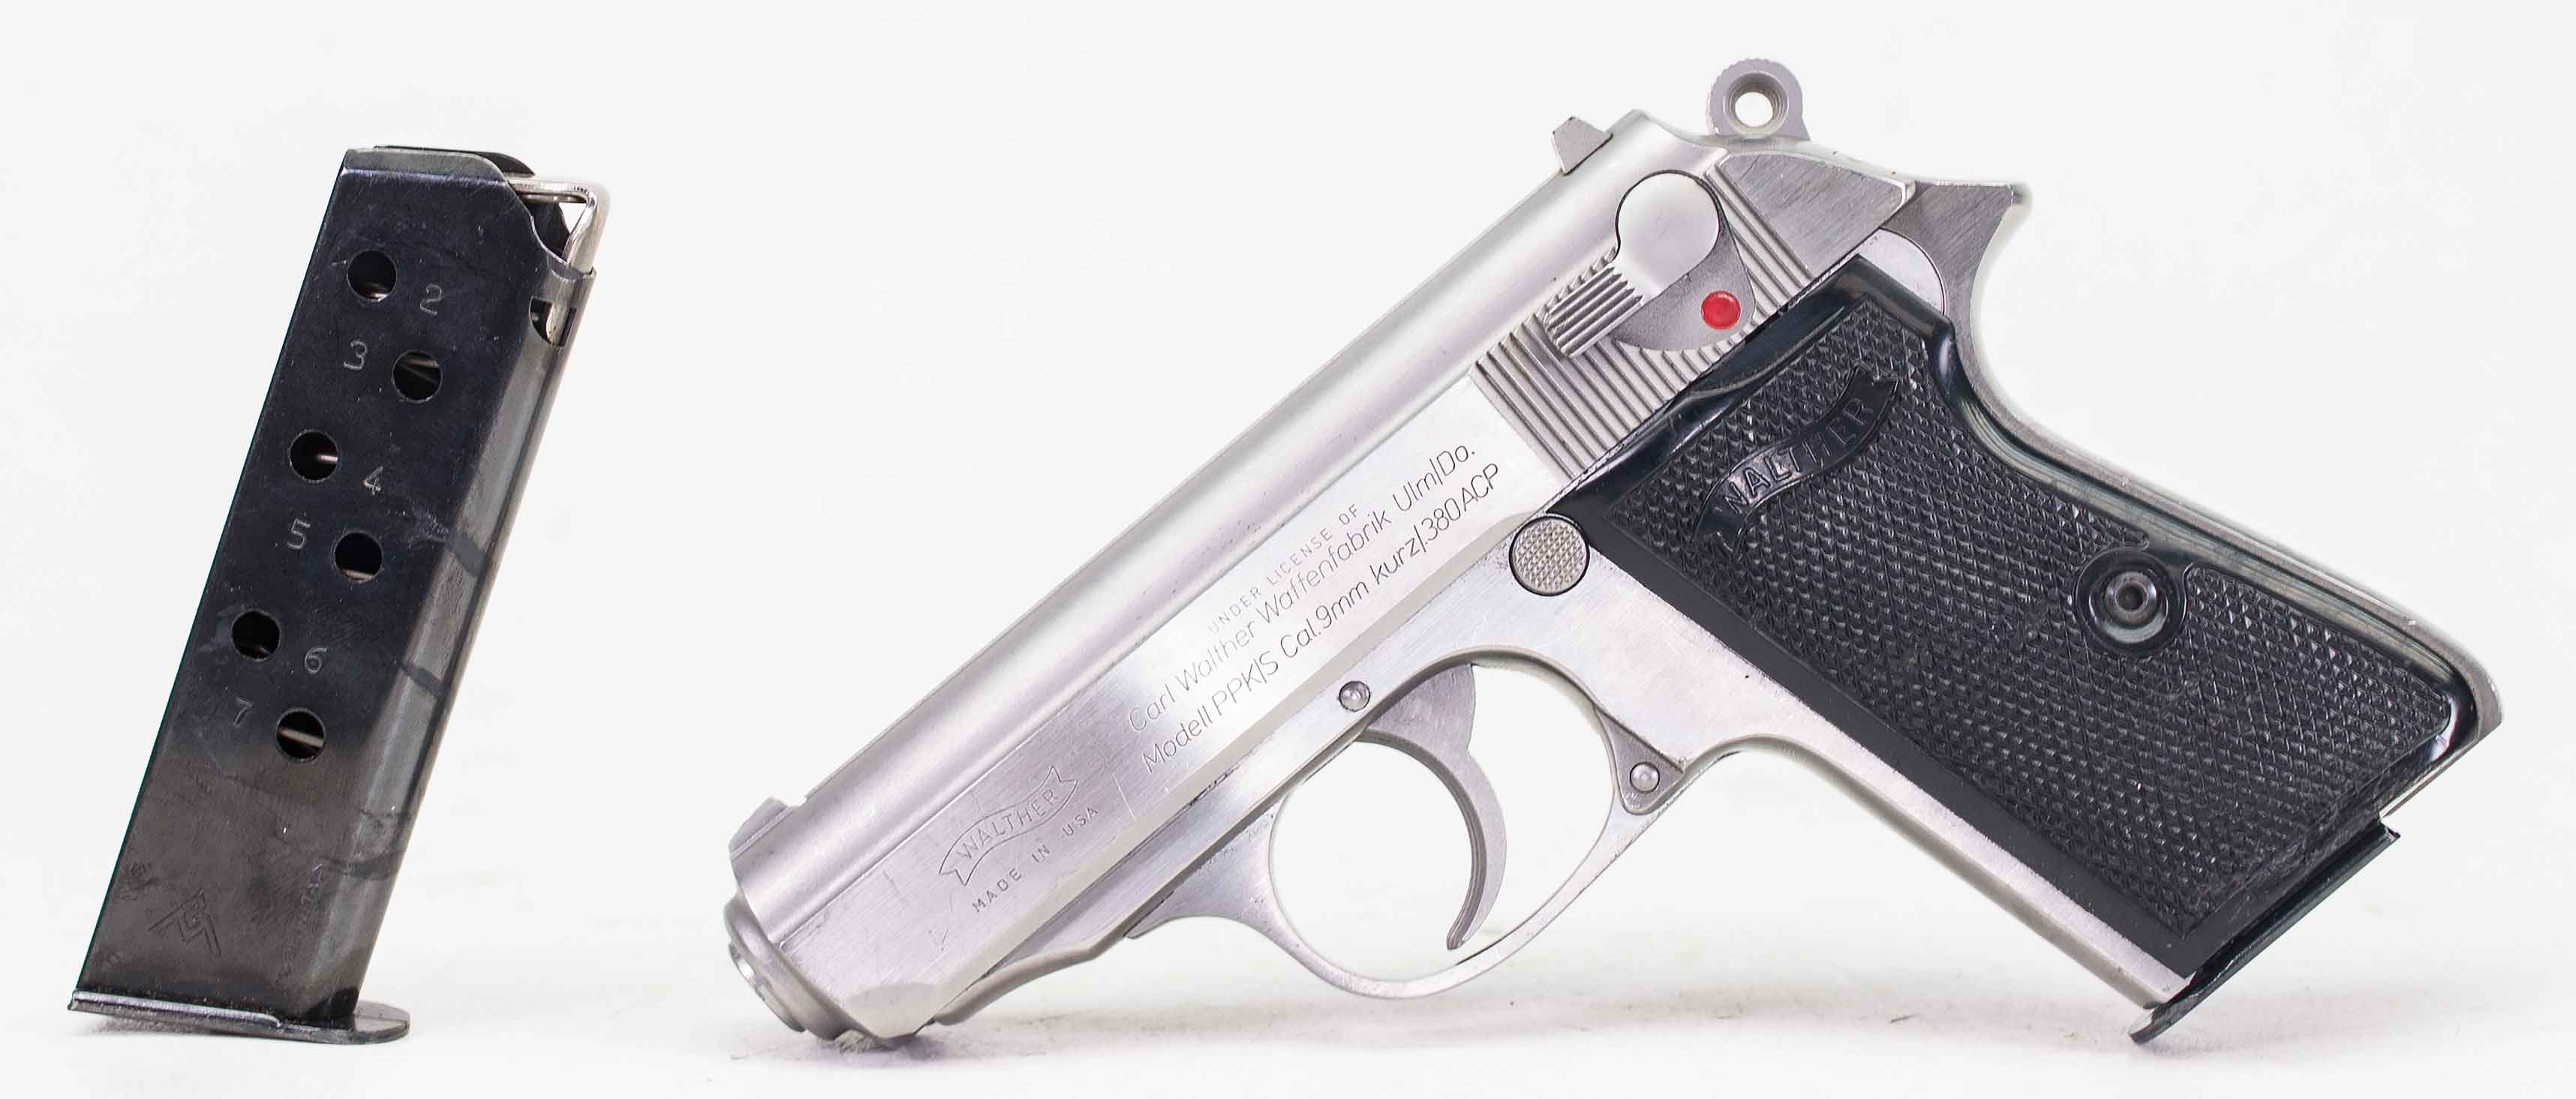 WALTHER PPK/S (Auction ID: 10594680, End Time : Feb. 02, 2018 22:35 ...